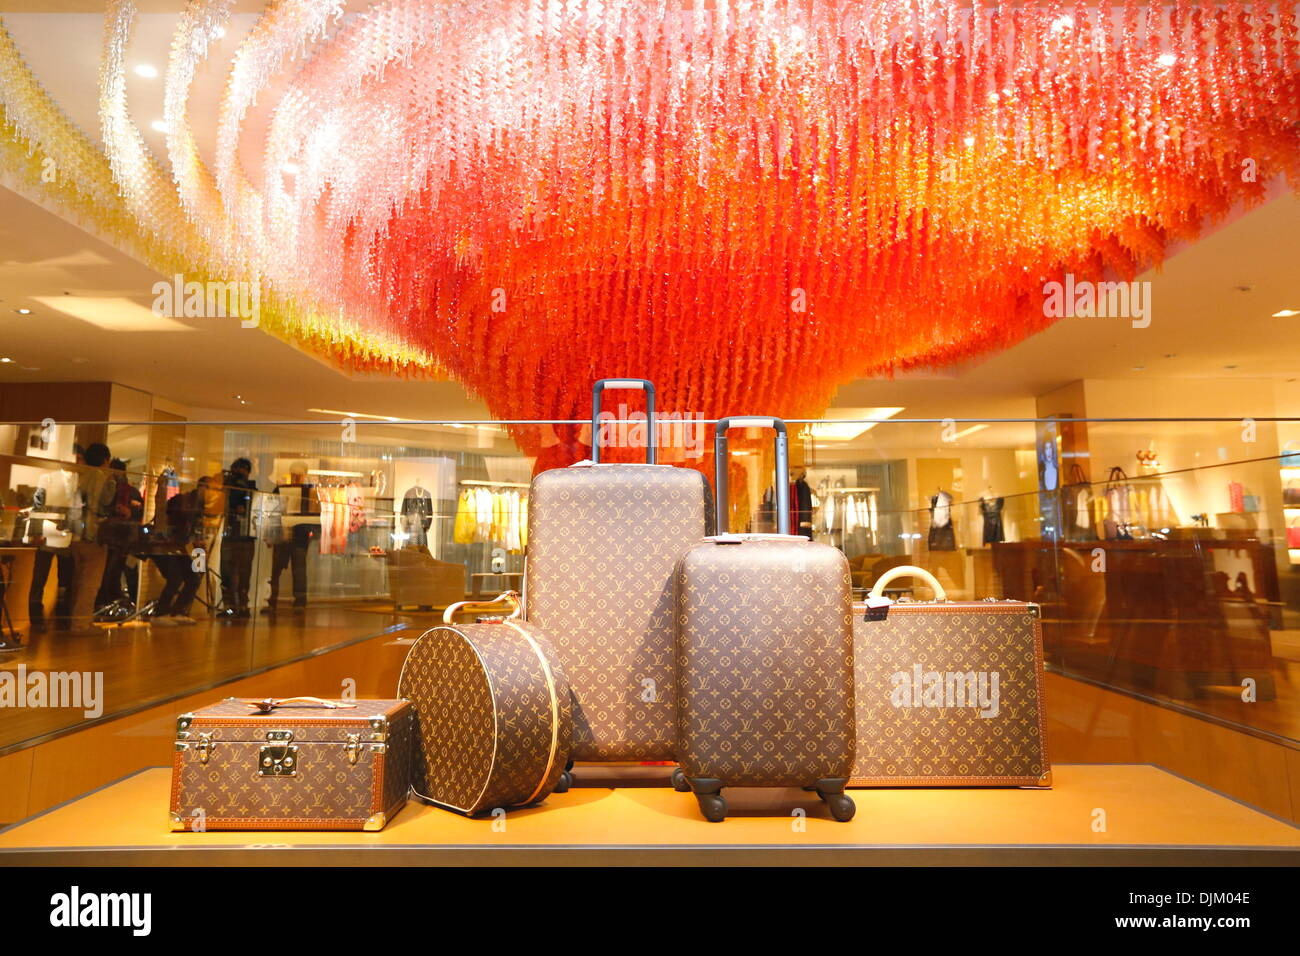 "Tokio, Japan. 28. November 2013. Louis Vuitton Shop, 28. November 2013: Zeremonie zu öffnen, für ""LOUIS VUITTON"" in Shinjuku, Tokio, Japan zu speichern. Bildnachweis: Aflo Co. Ltd./Alamy Live-Nachrichten Stockbild"